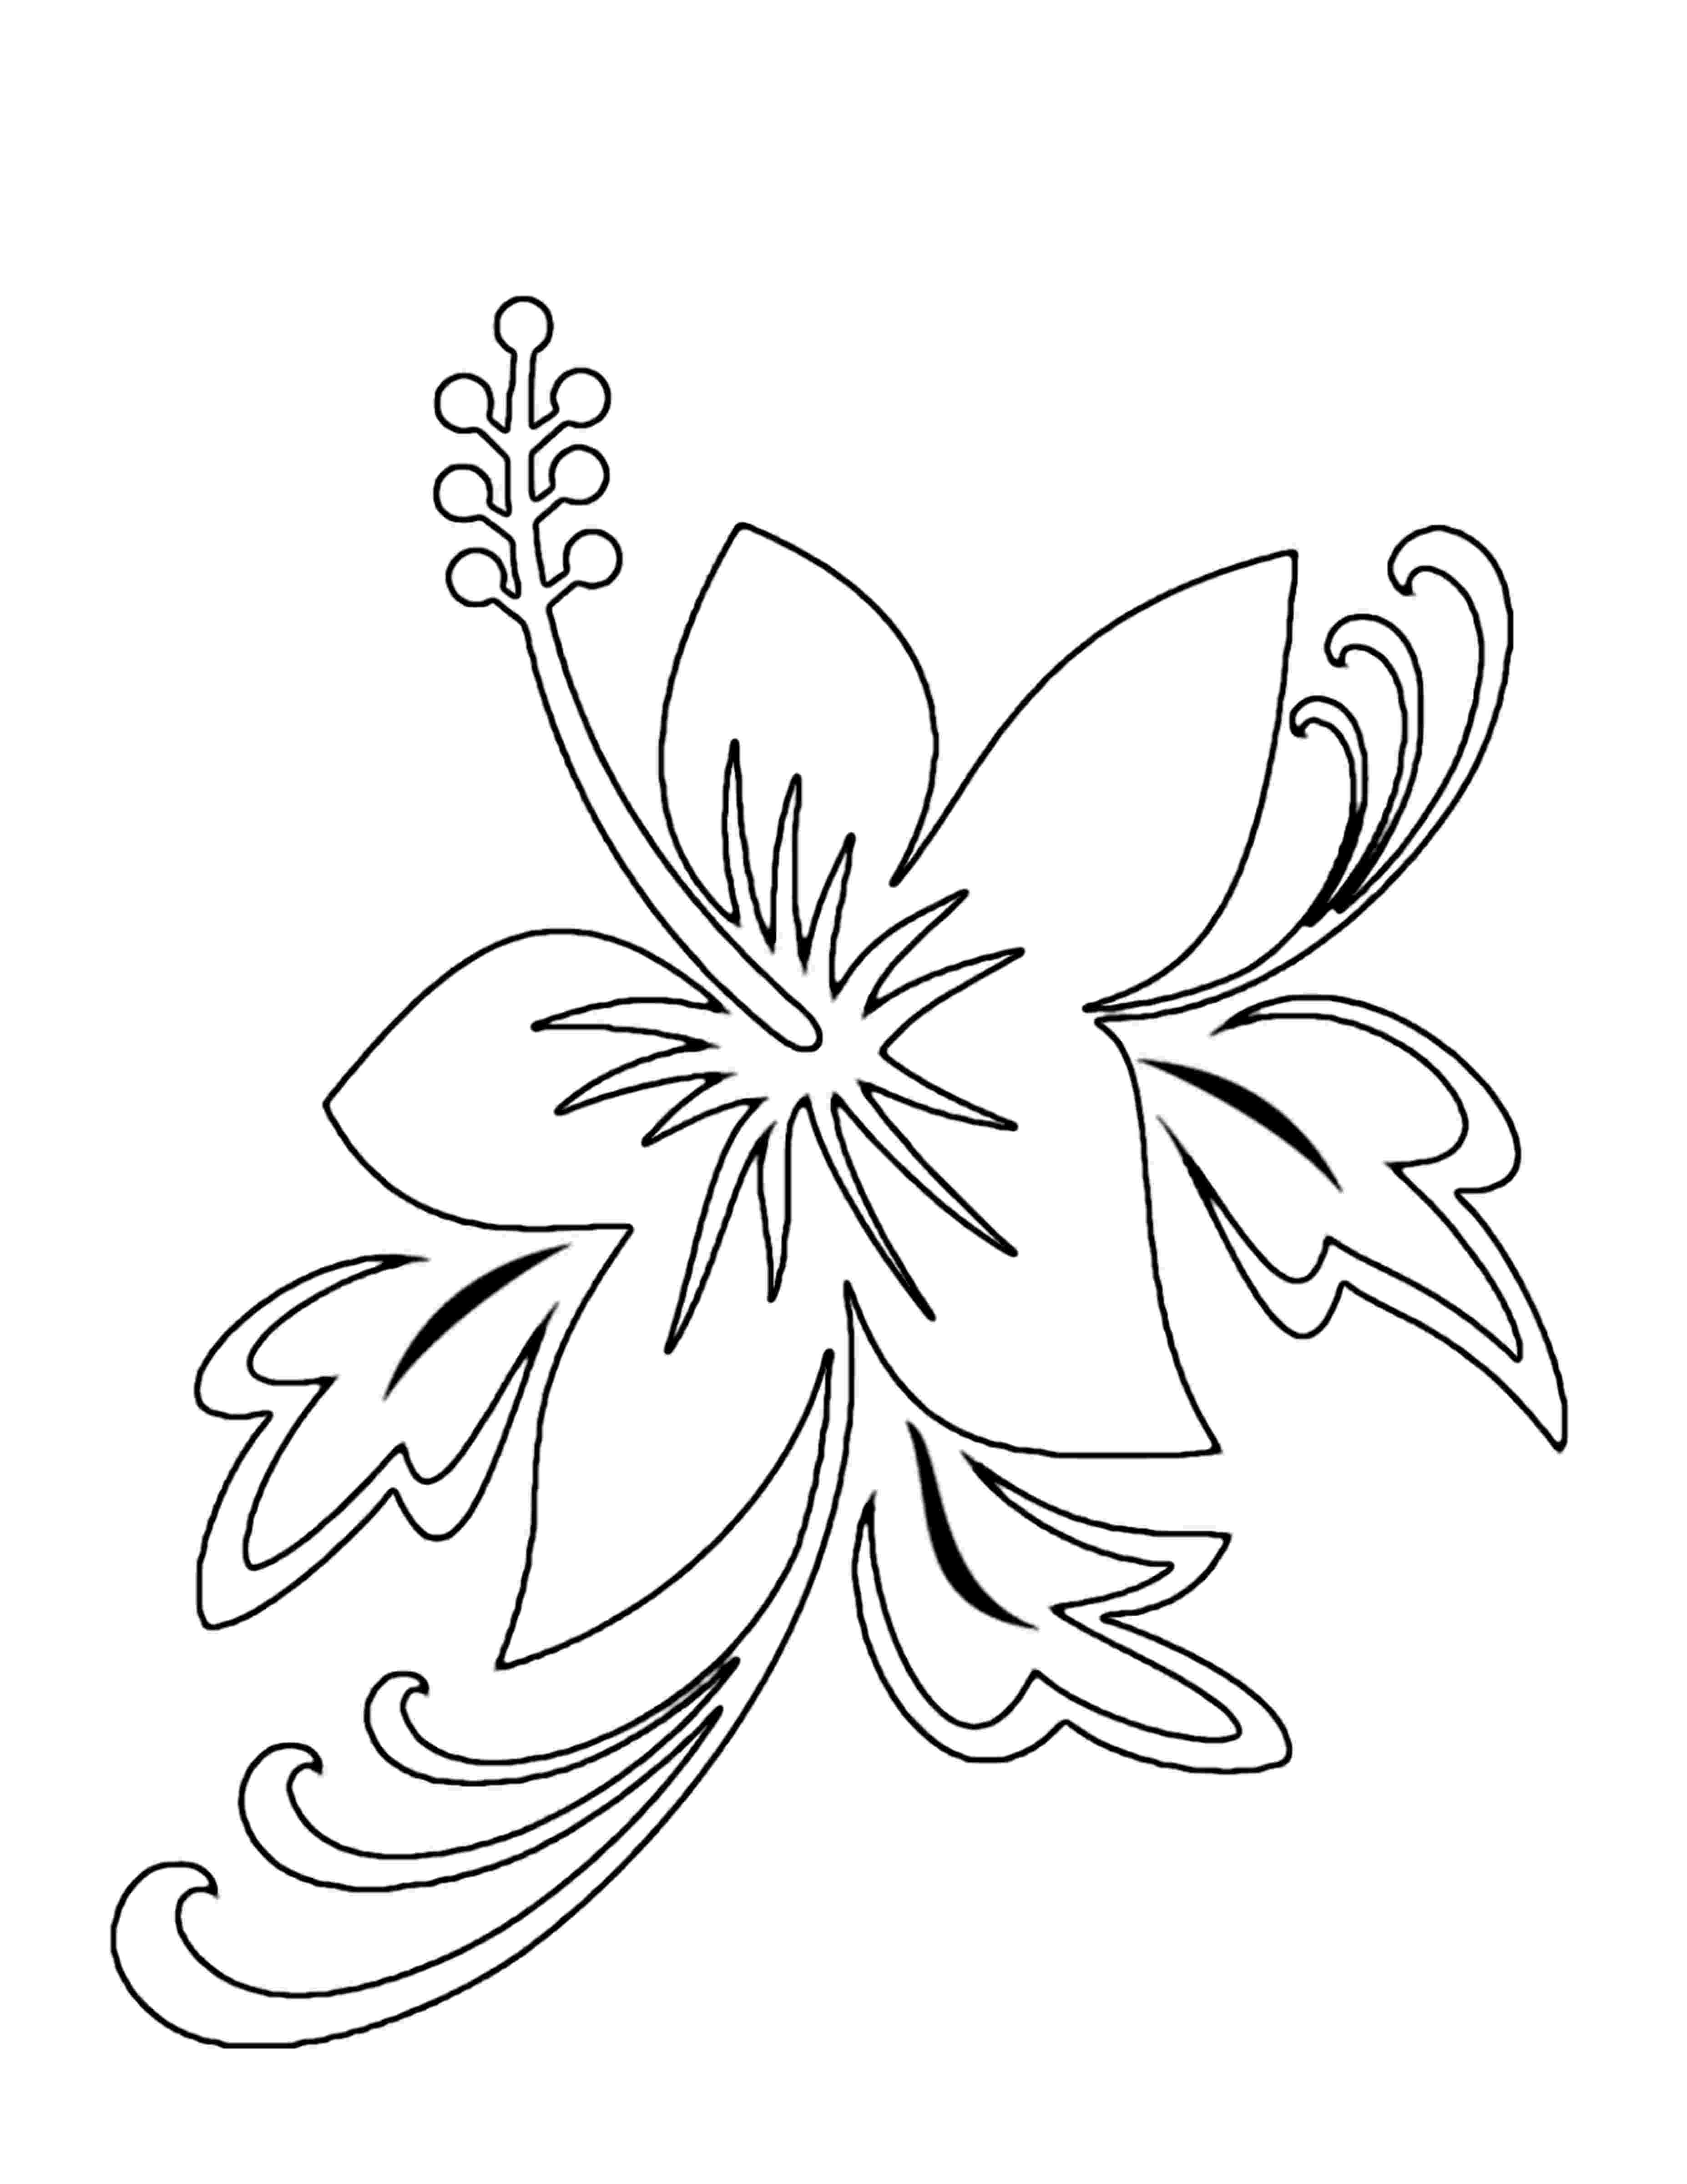 free flower pictures to print and color free printable flower coloring pages for kids best color print pictures to free flower and